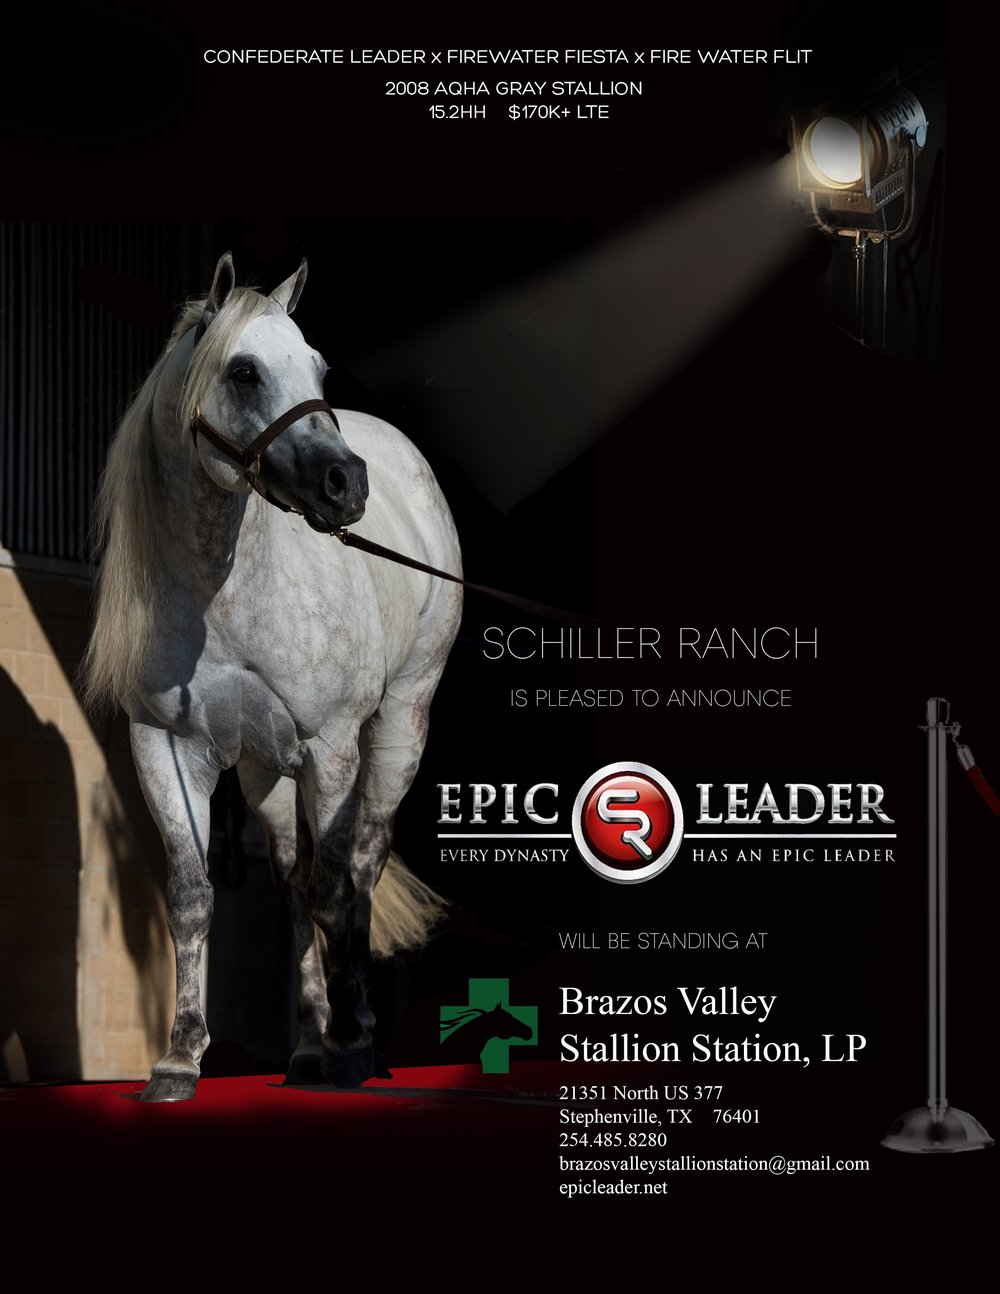 Brazos Valley Stallion Station Proof 02.jpg